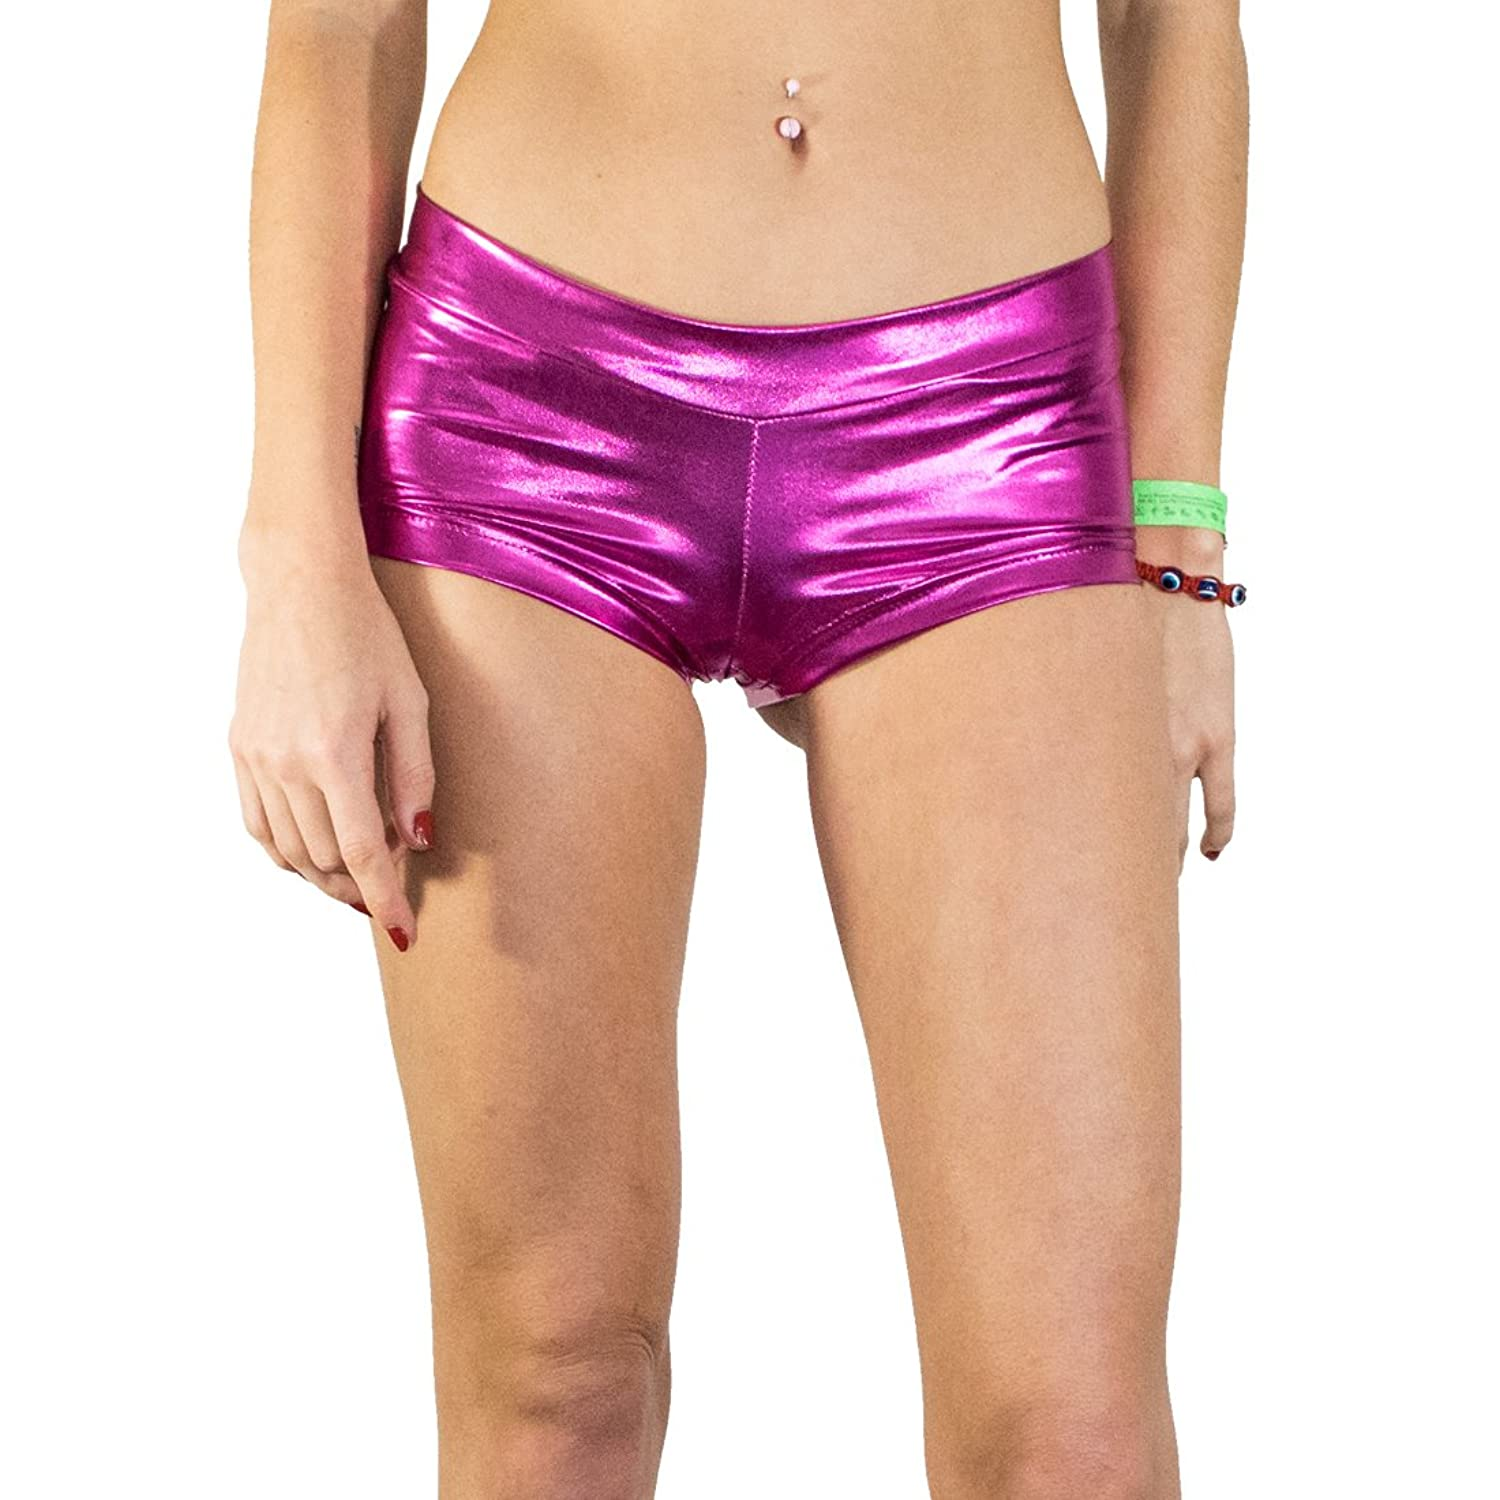 Short Shiny Booties, Women's Breathable Party Swim Yoga Shorts : Pink Panther